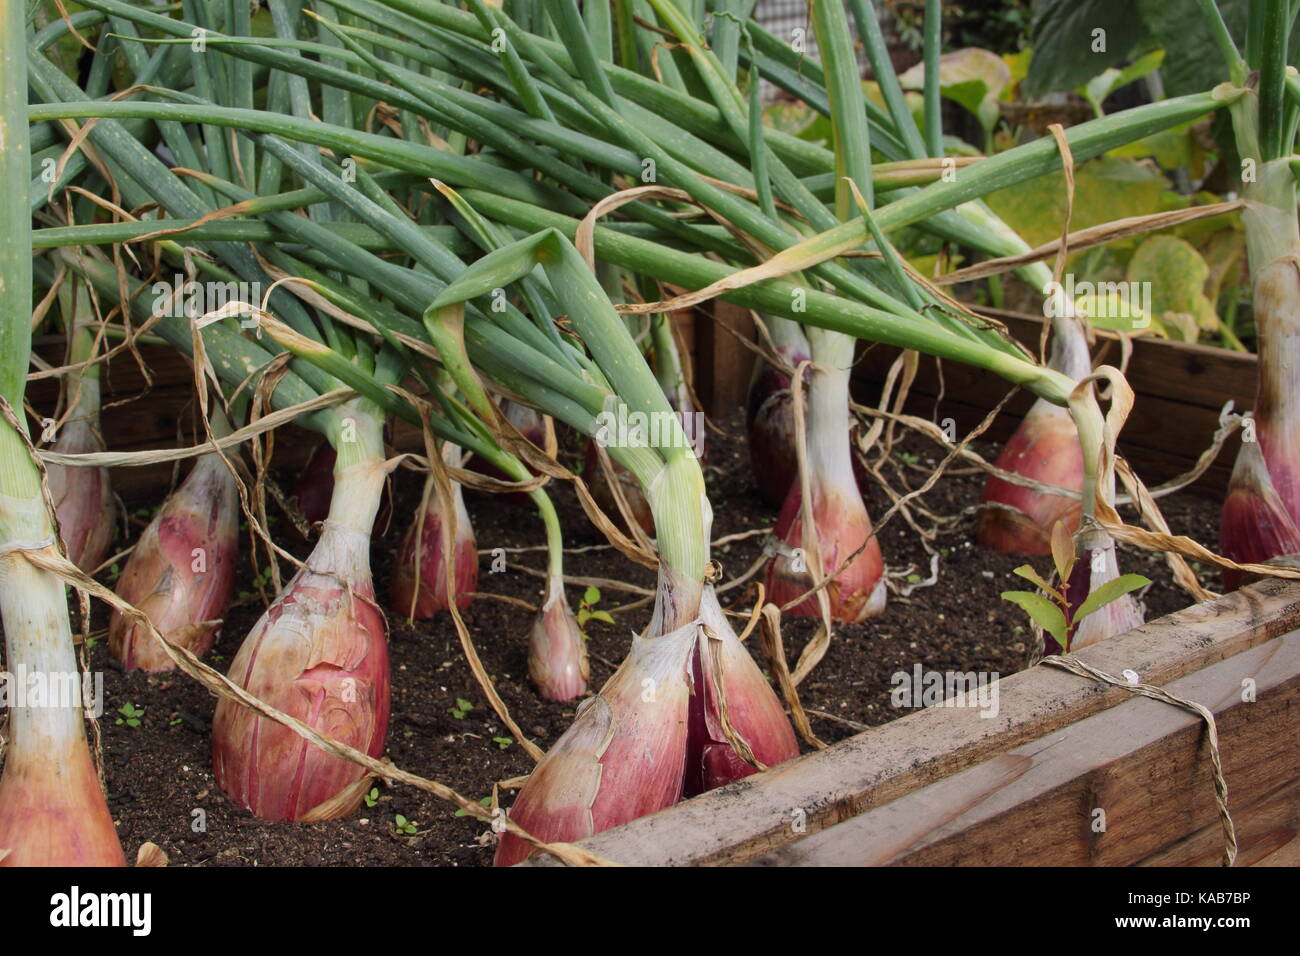 Red onions growing